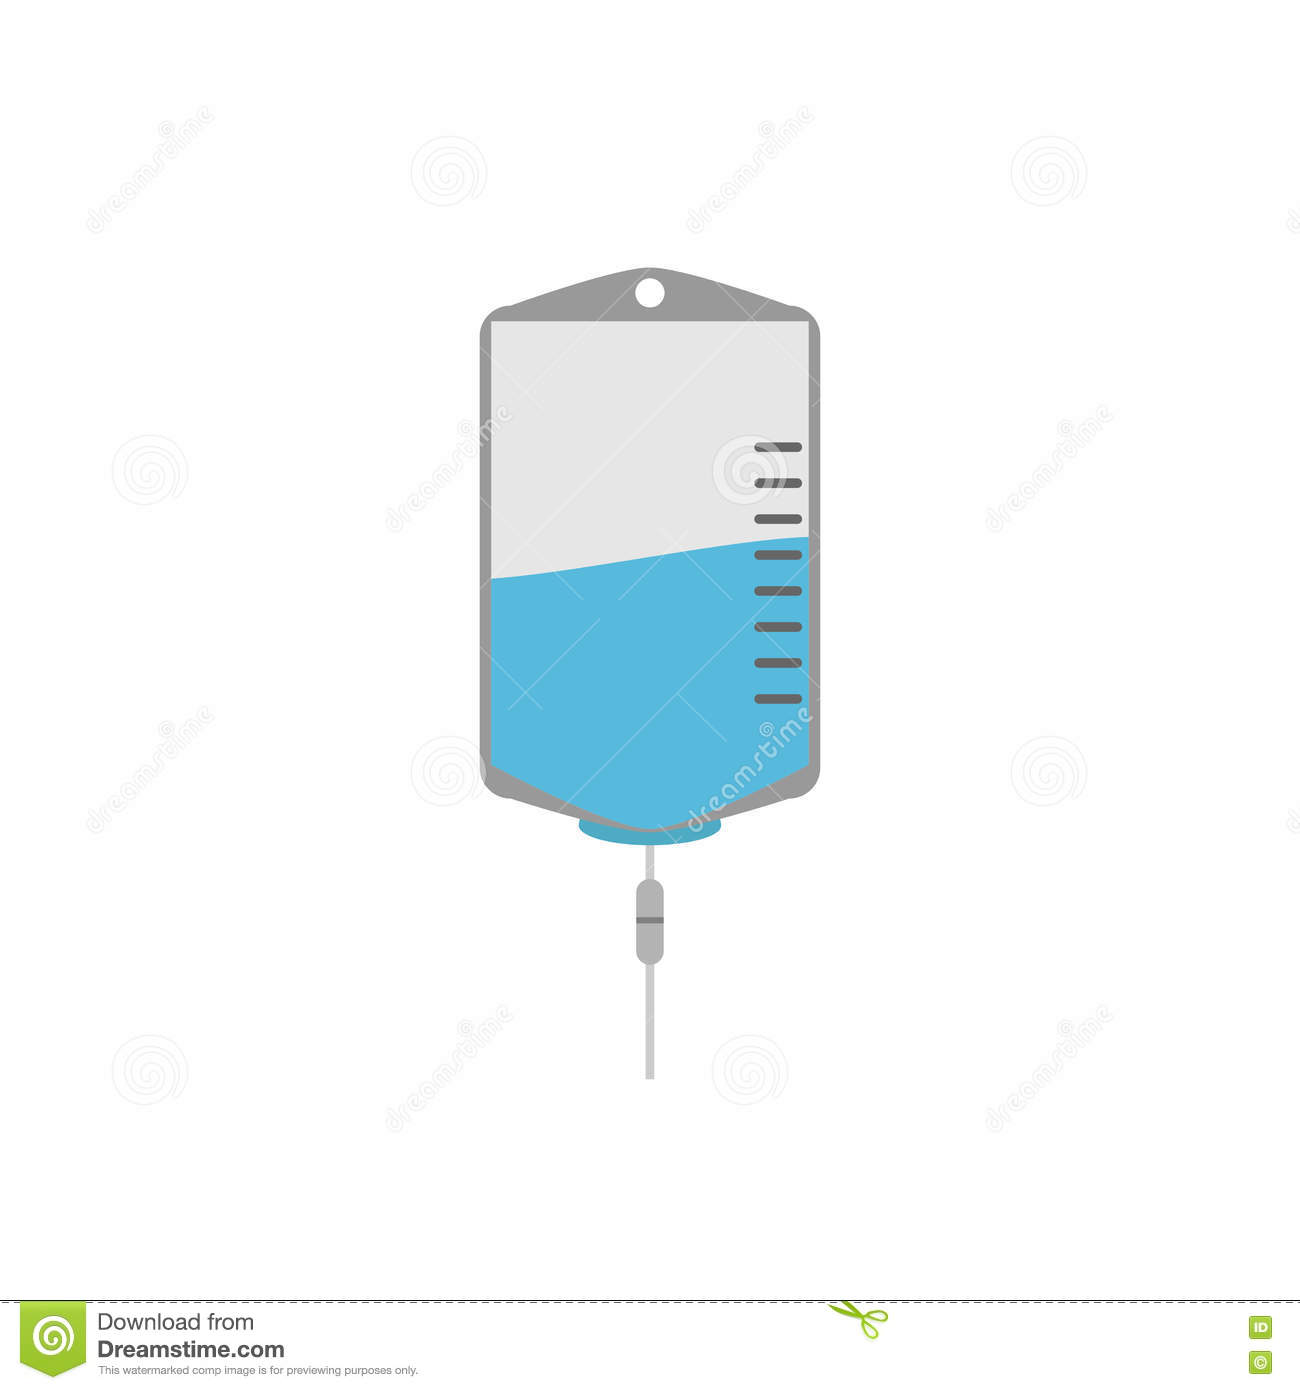 how to make homemade saline solution for iv